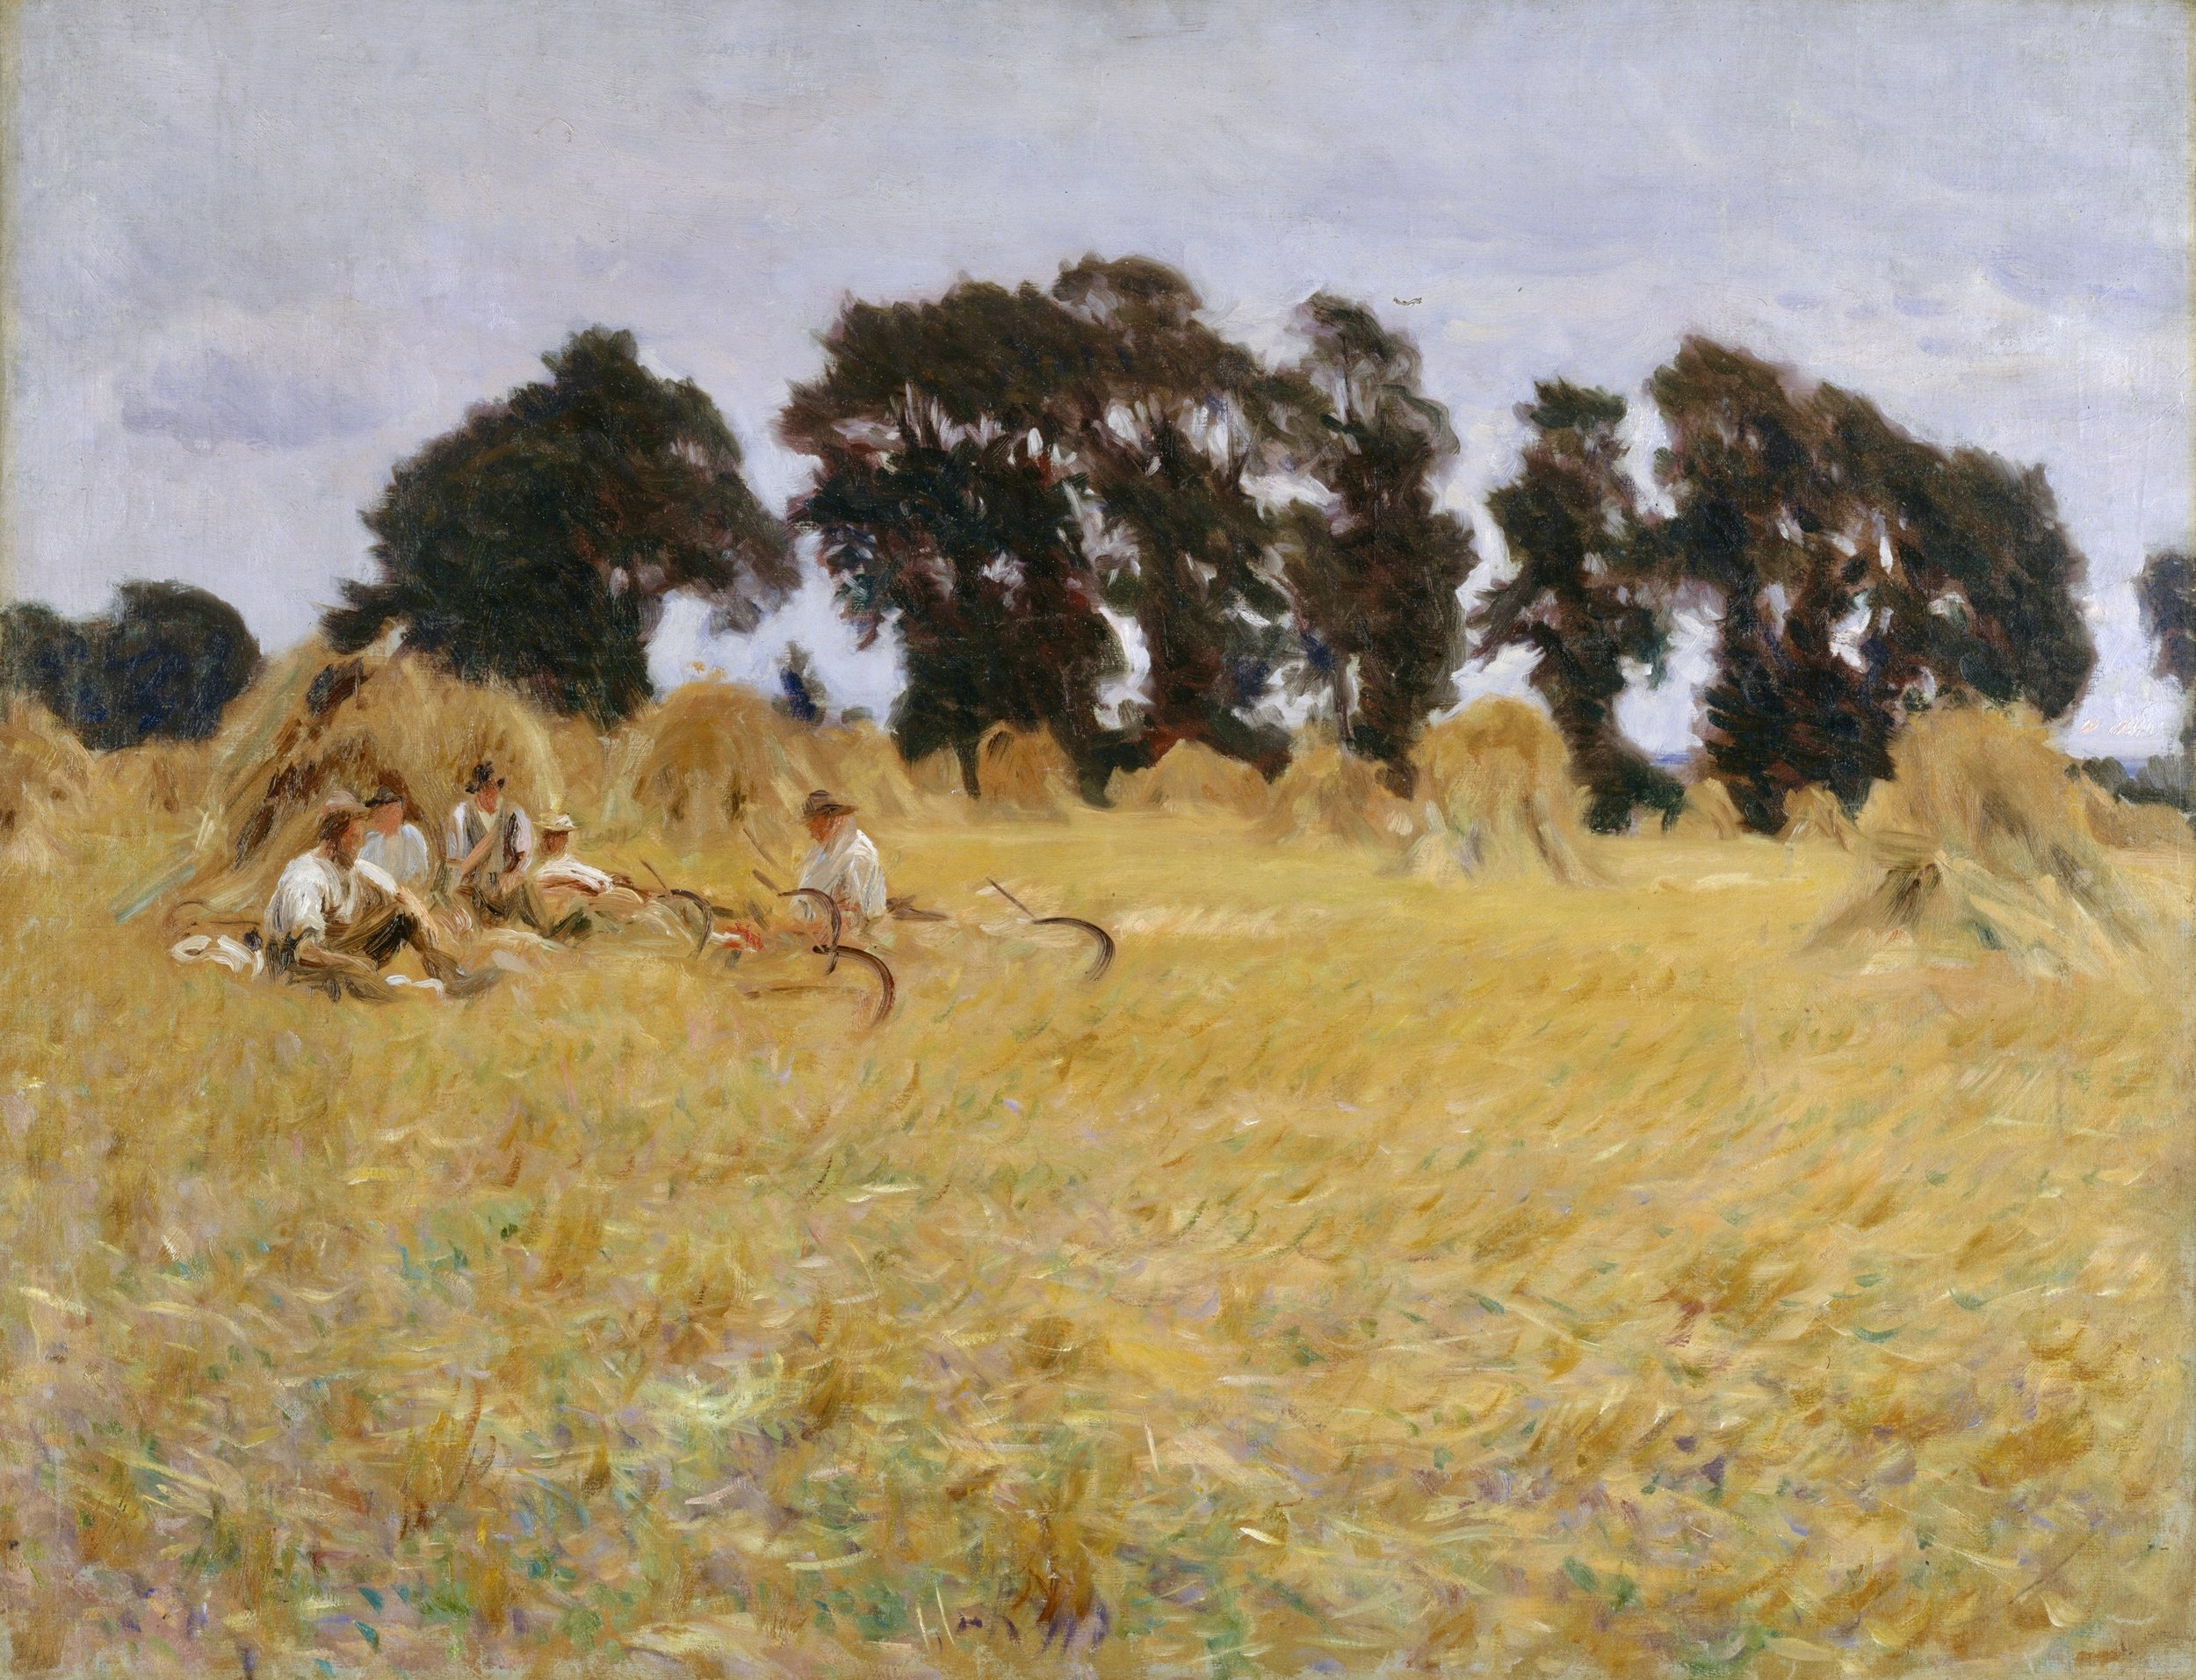 John Singer Sargent, Reapers Resting in a Wheatfield